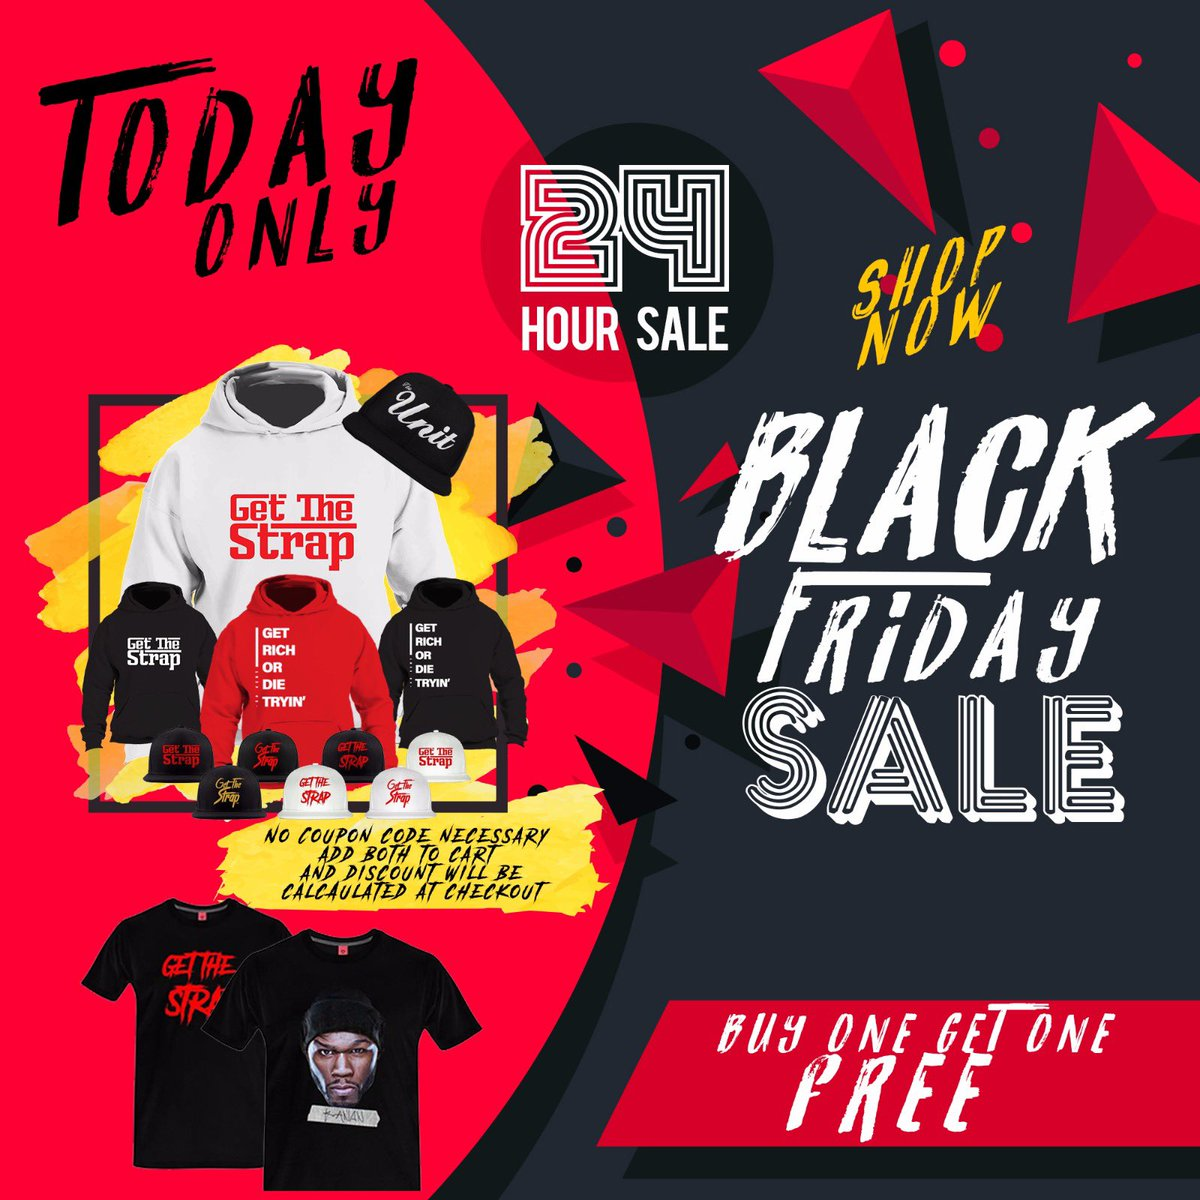 6 Hours Left | Buy One, Get One FREE!! https://t.co/fOHBnoBOTi https://t.co/GpnUgktxdr